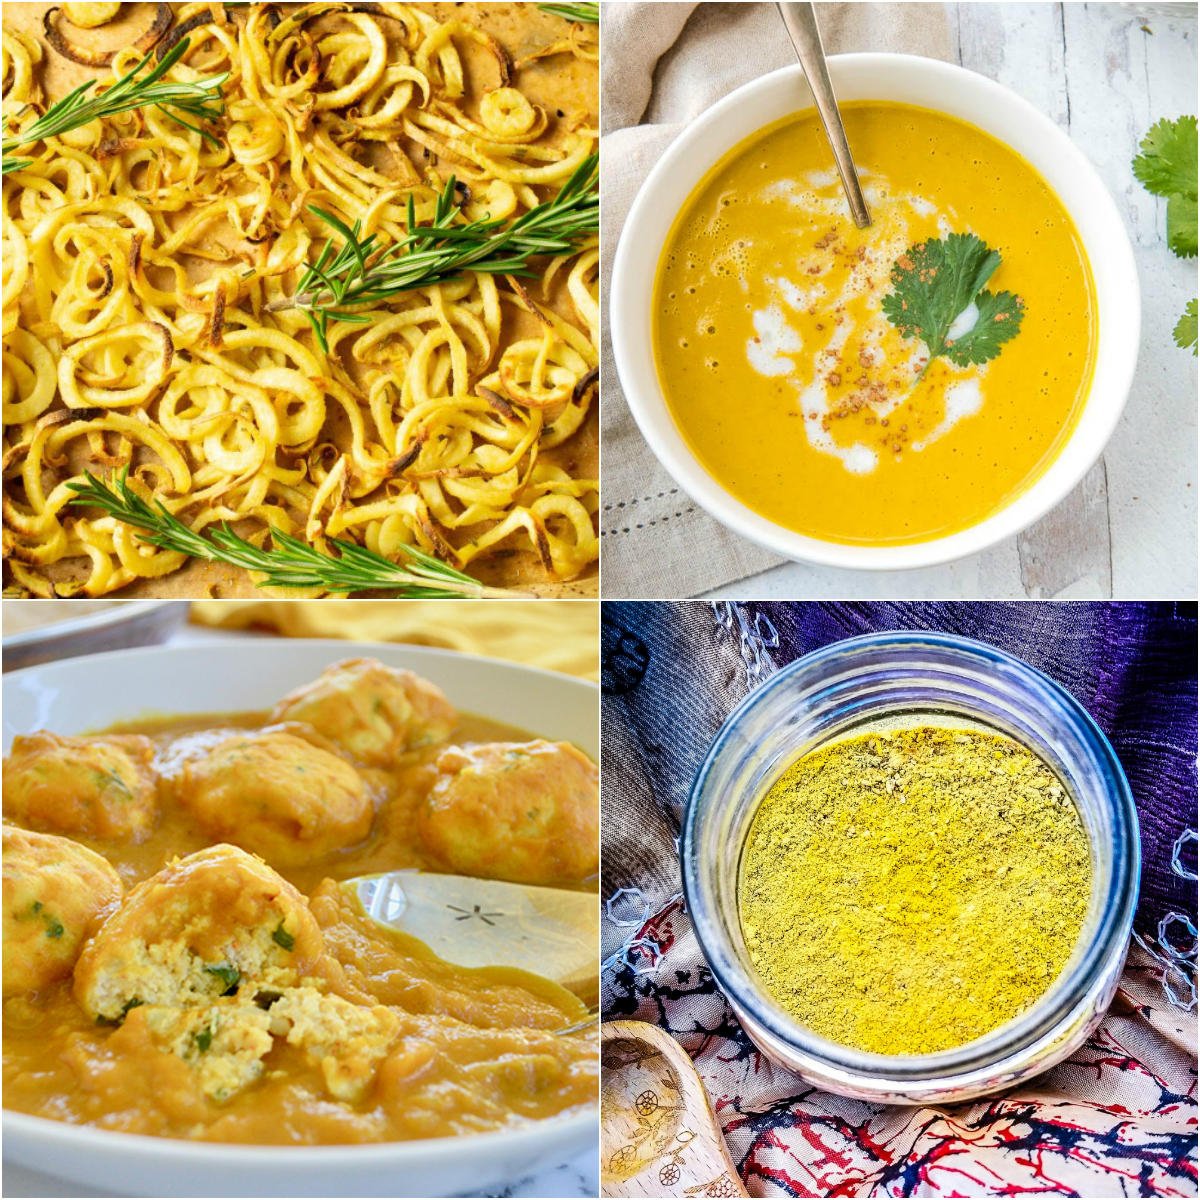 Paleo AIP Recipe Roundtable #307 | Phoenix Helix - *Featured Recipes: Curly Fries, Chicken Kofta Curry, Tandoori Pumpkin Soup, and Fire Cider Spice Blend